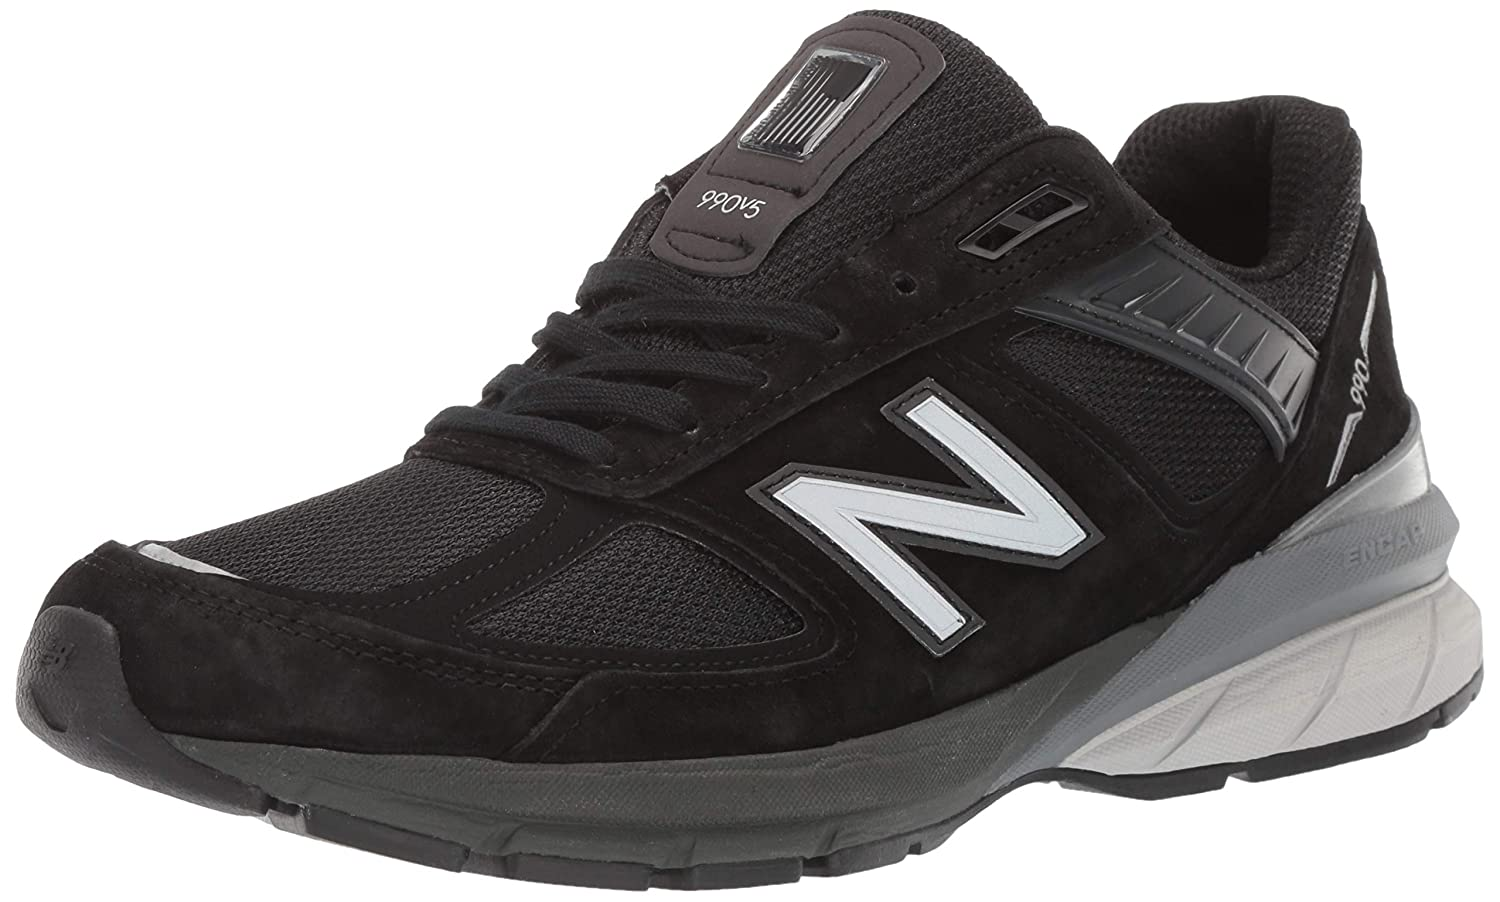 watch d7582 c86bd New Balance Men's 990v5 Sneaker